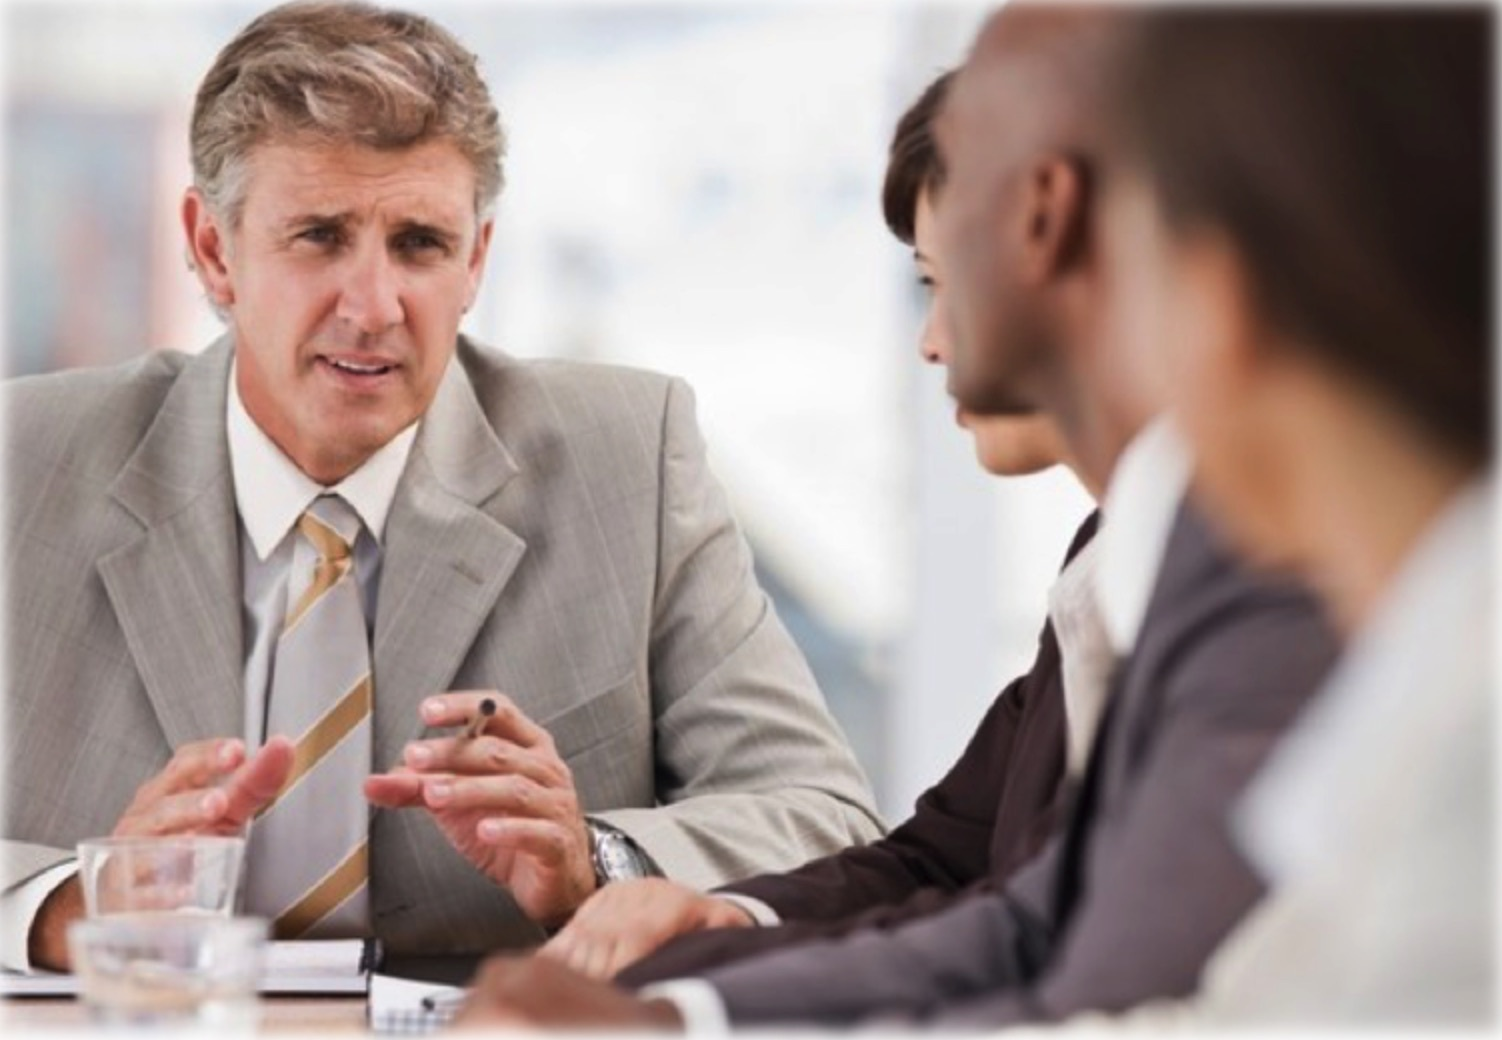 The Benefits of Bringing in a Specialist Recruiter